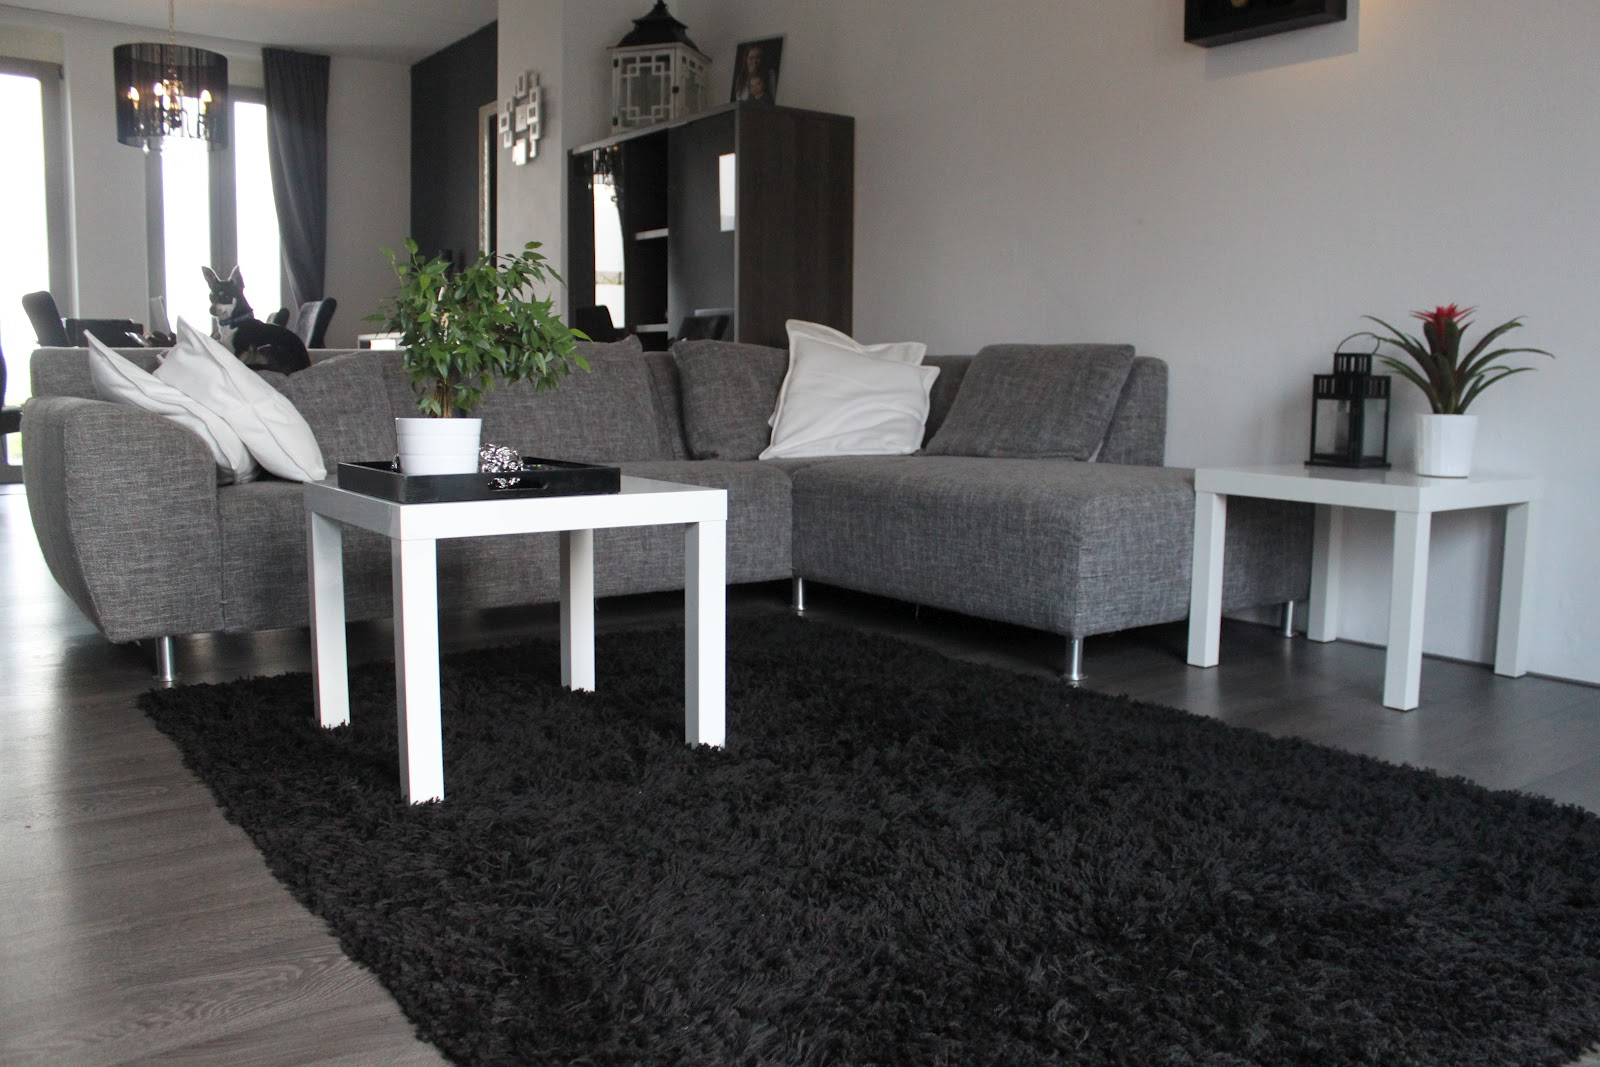 Woonkamer make over ~ elise's blog